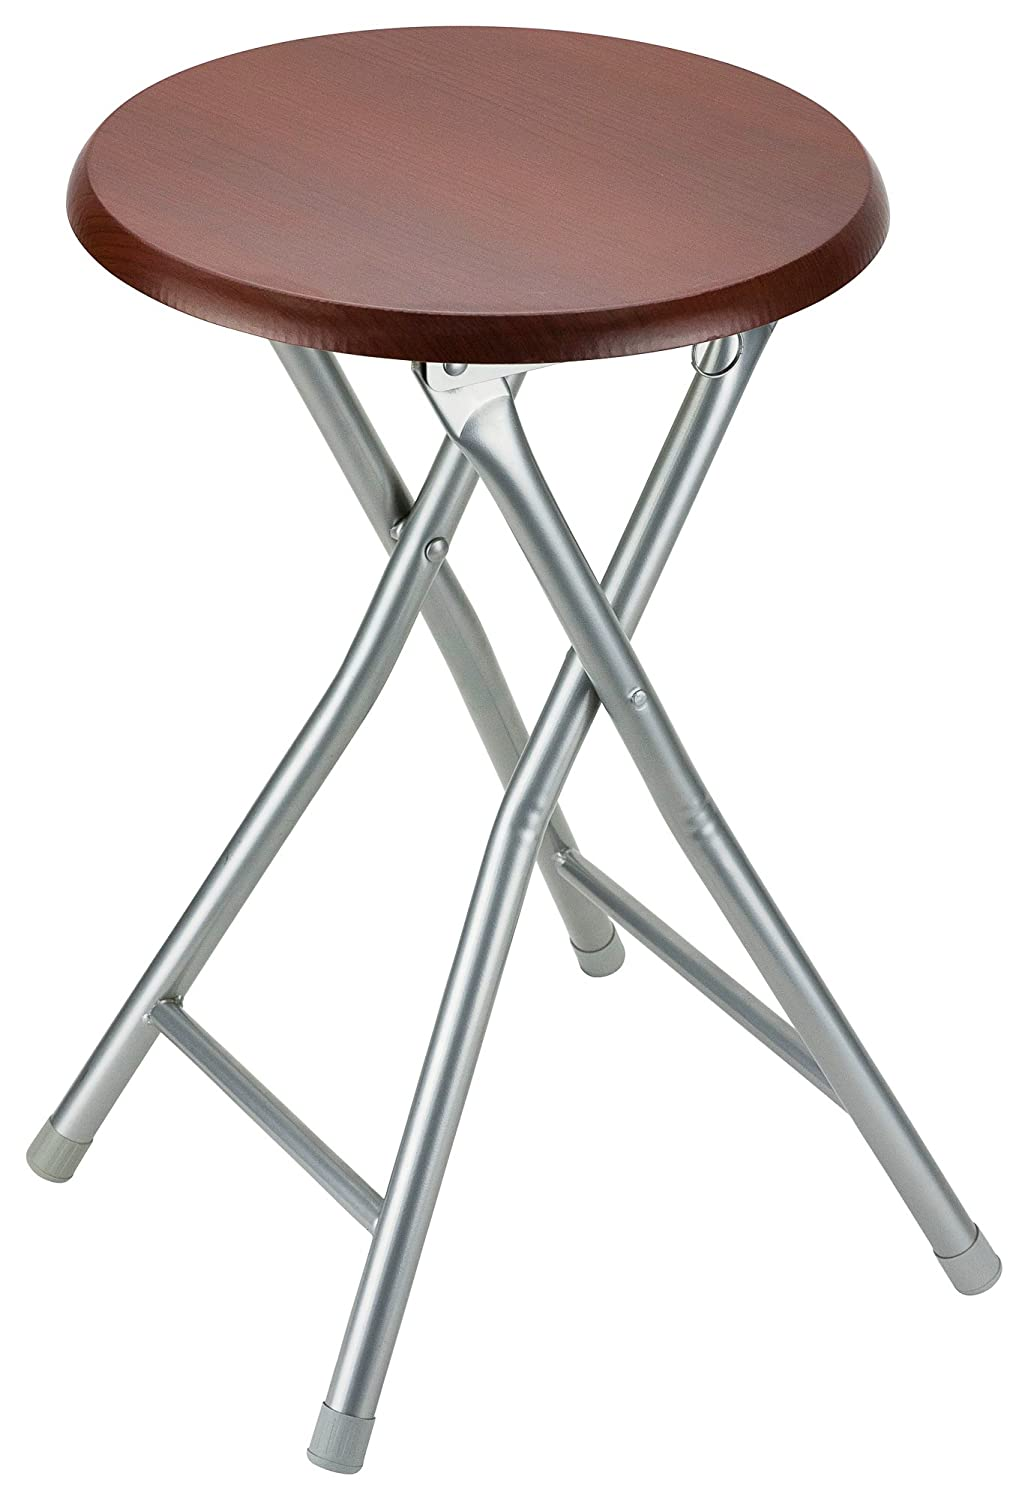 DecorRack Wooden Seat Folding Stool, 18 inch Portable Lightweight Foldable Chair, Collapsible Sitting Stool with Wooden Seating Top, Cherry (1 Pack)